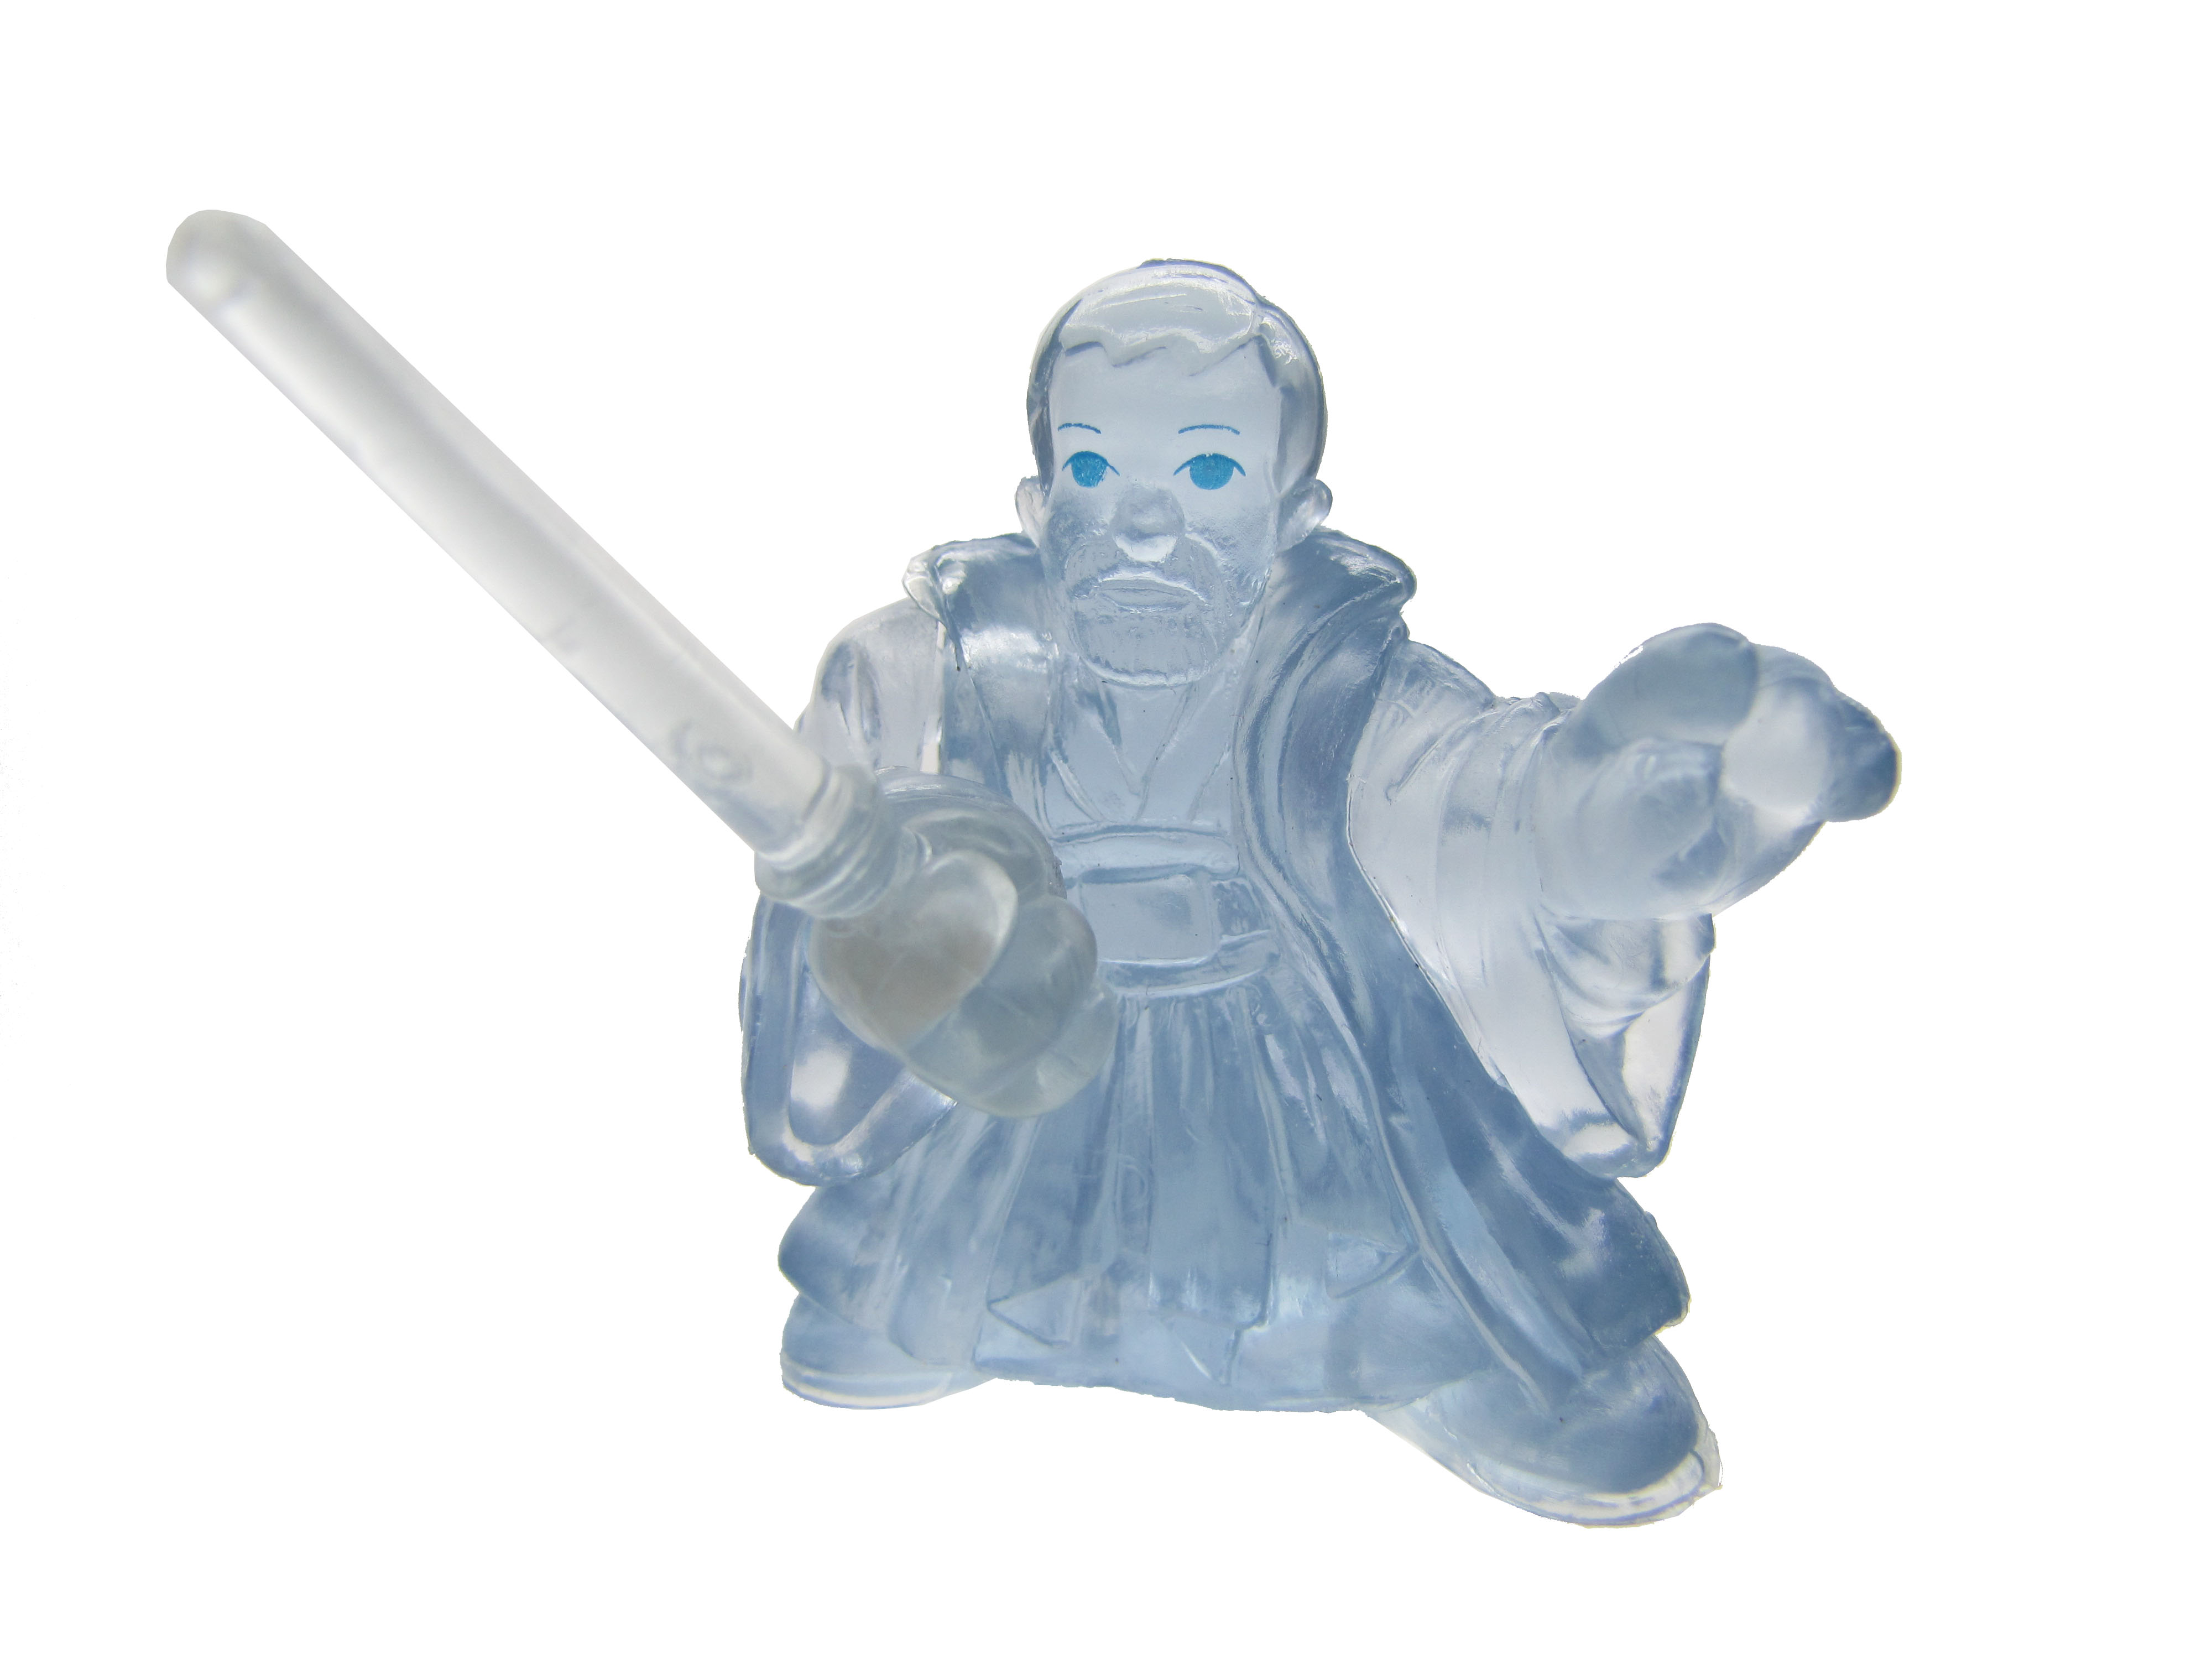 Star Wars Galactic Heroes Spirit Obi-Wan Endor Celebration